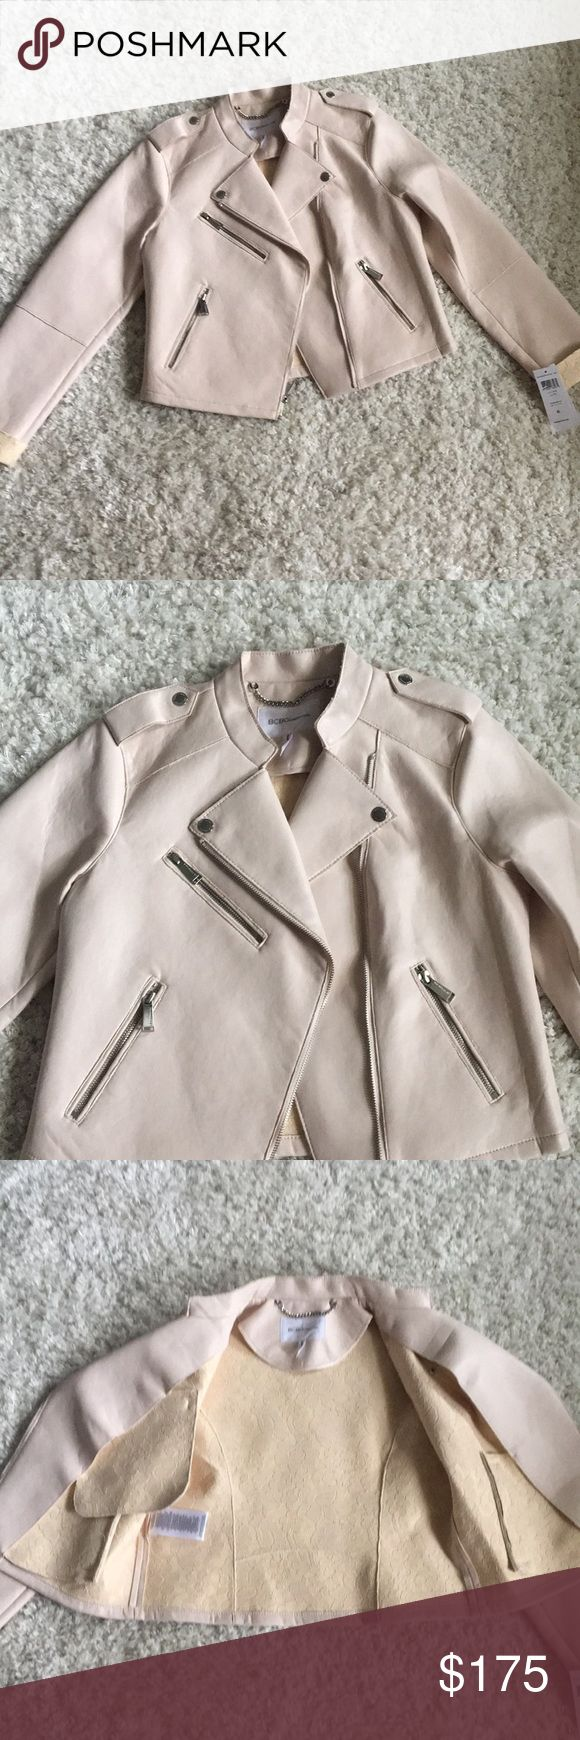 NWT BCBGeneration jacket NWT BCBGeneration jacket inside lace faux leather nude pink BCBGeneration Jackets & Coats